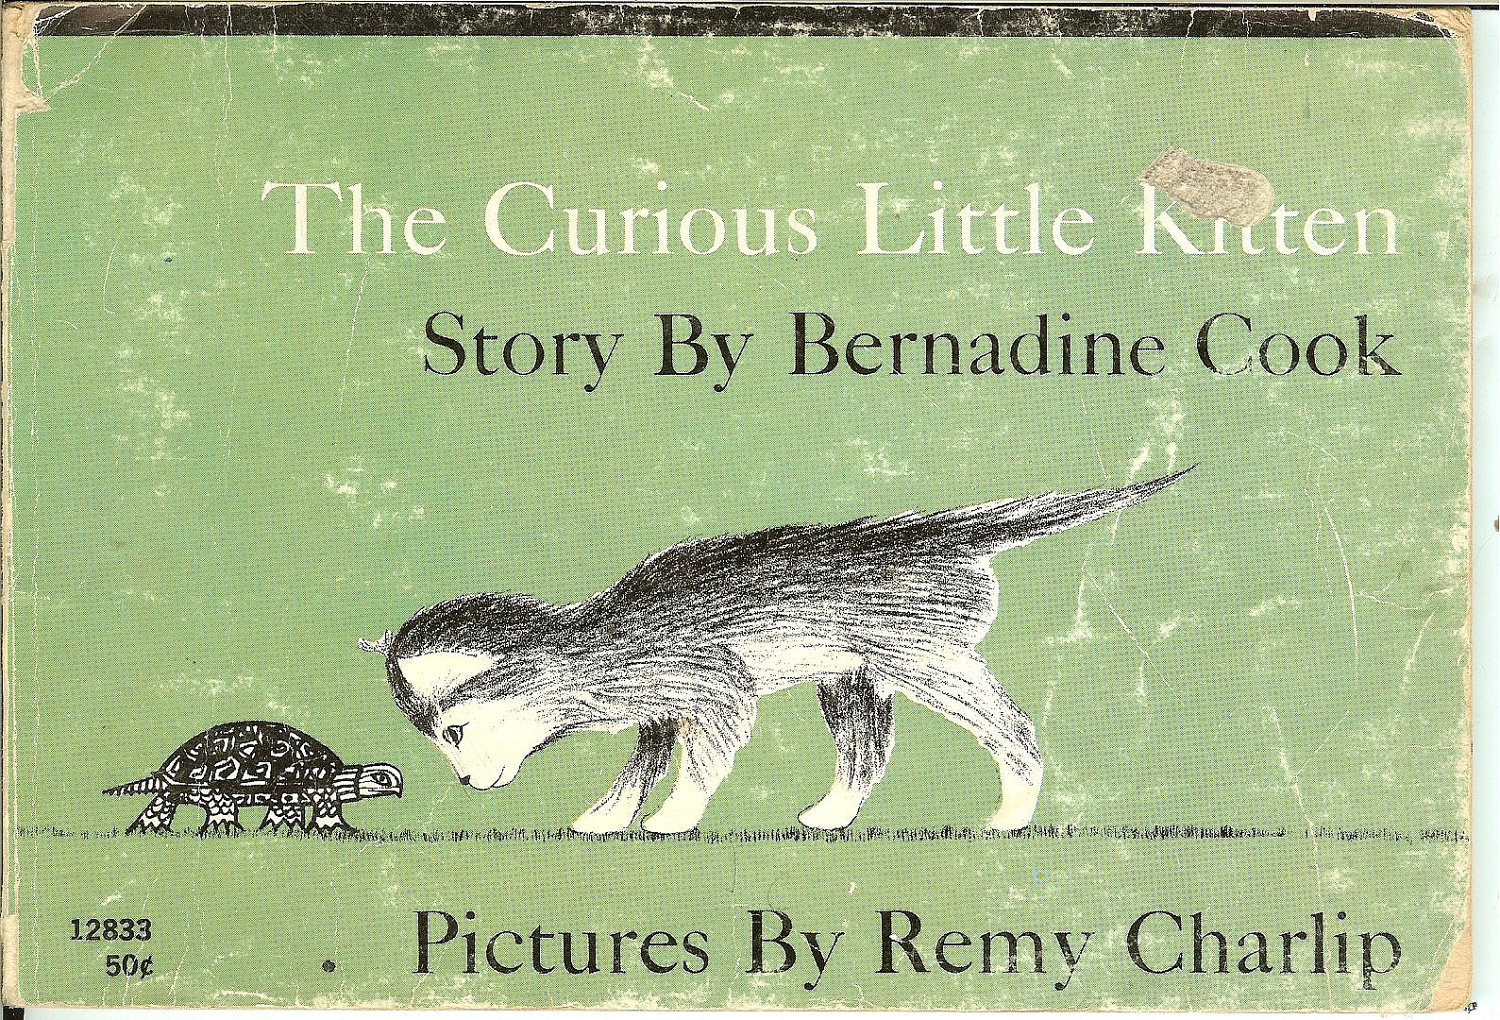 The Curious little Kitten By Bernadine Cook. Illustrated by Remy Charlip 1970. $3  here .